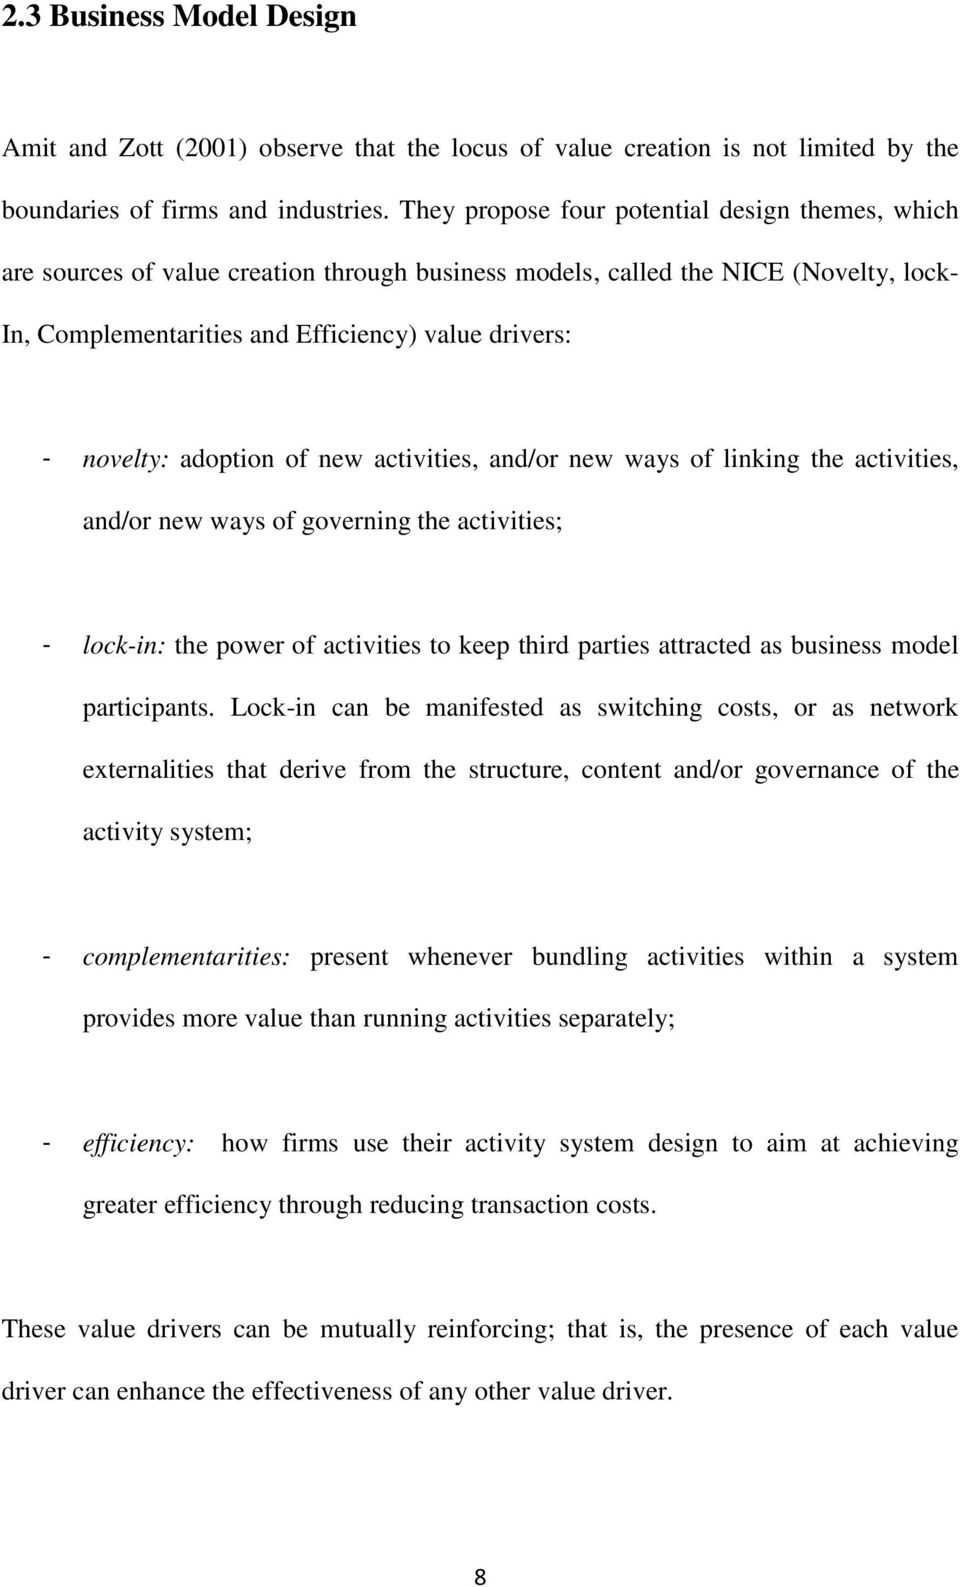 adoption of new activities, and/or new ways of linking the activities, and/or new ways of governing the activities; - lock-in: the power of activities to keep third parties attracted as business